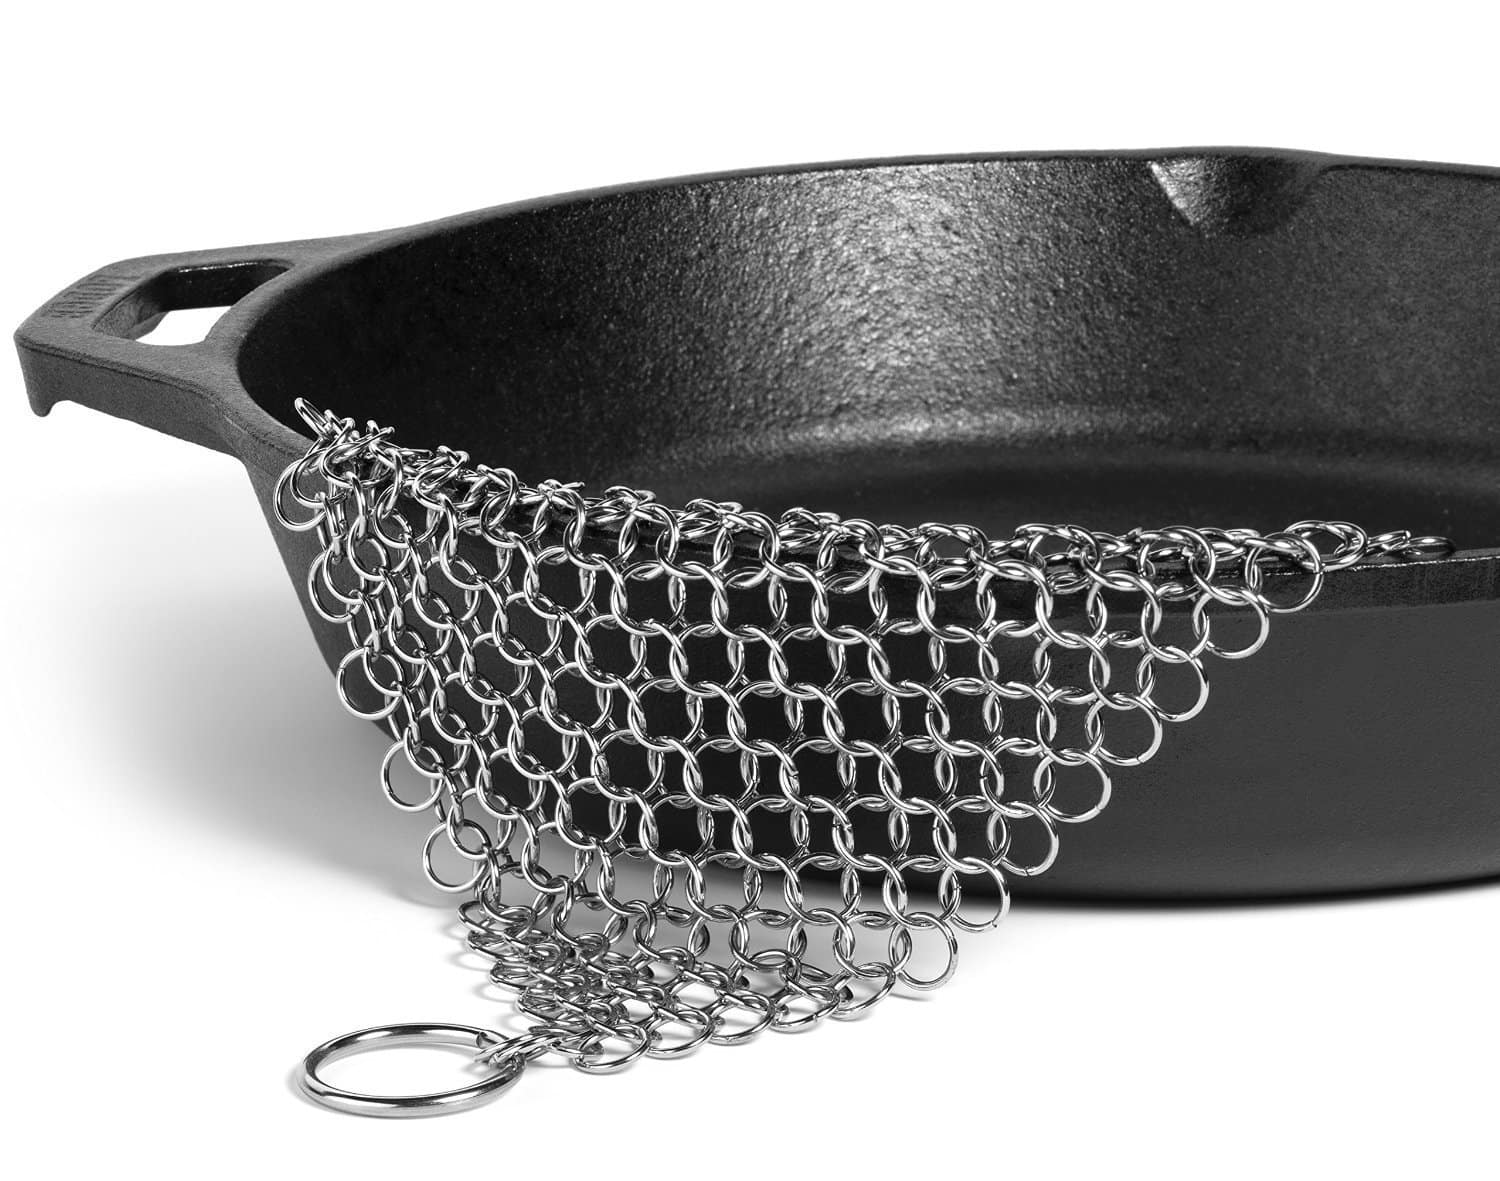 """Amagabeli 8""""x6"""" Stainless Steel Cast Iron Cleaner Chainmail Scrubber for $6.99 @Amazon"""